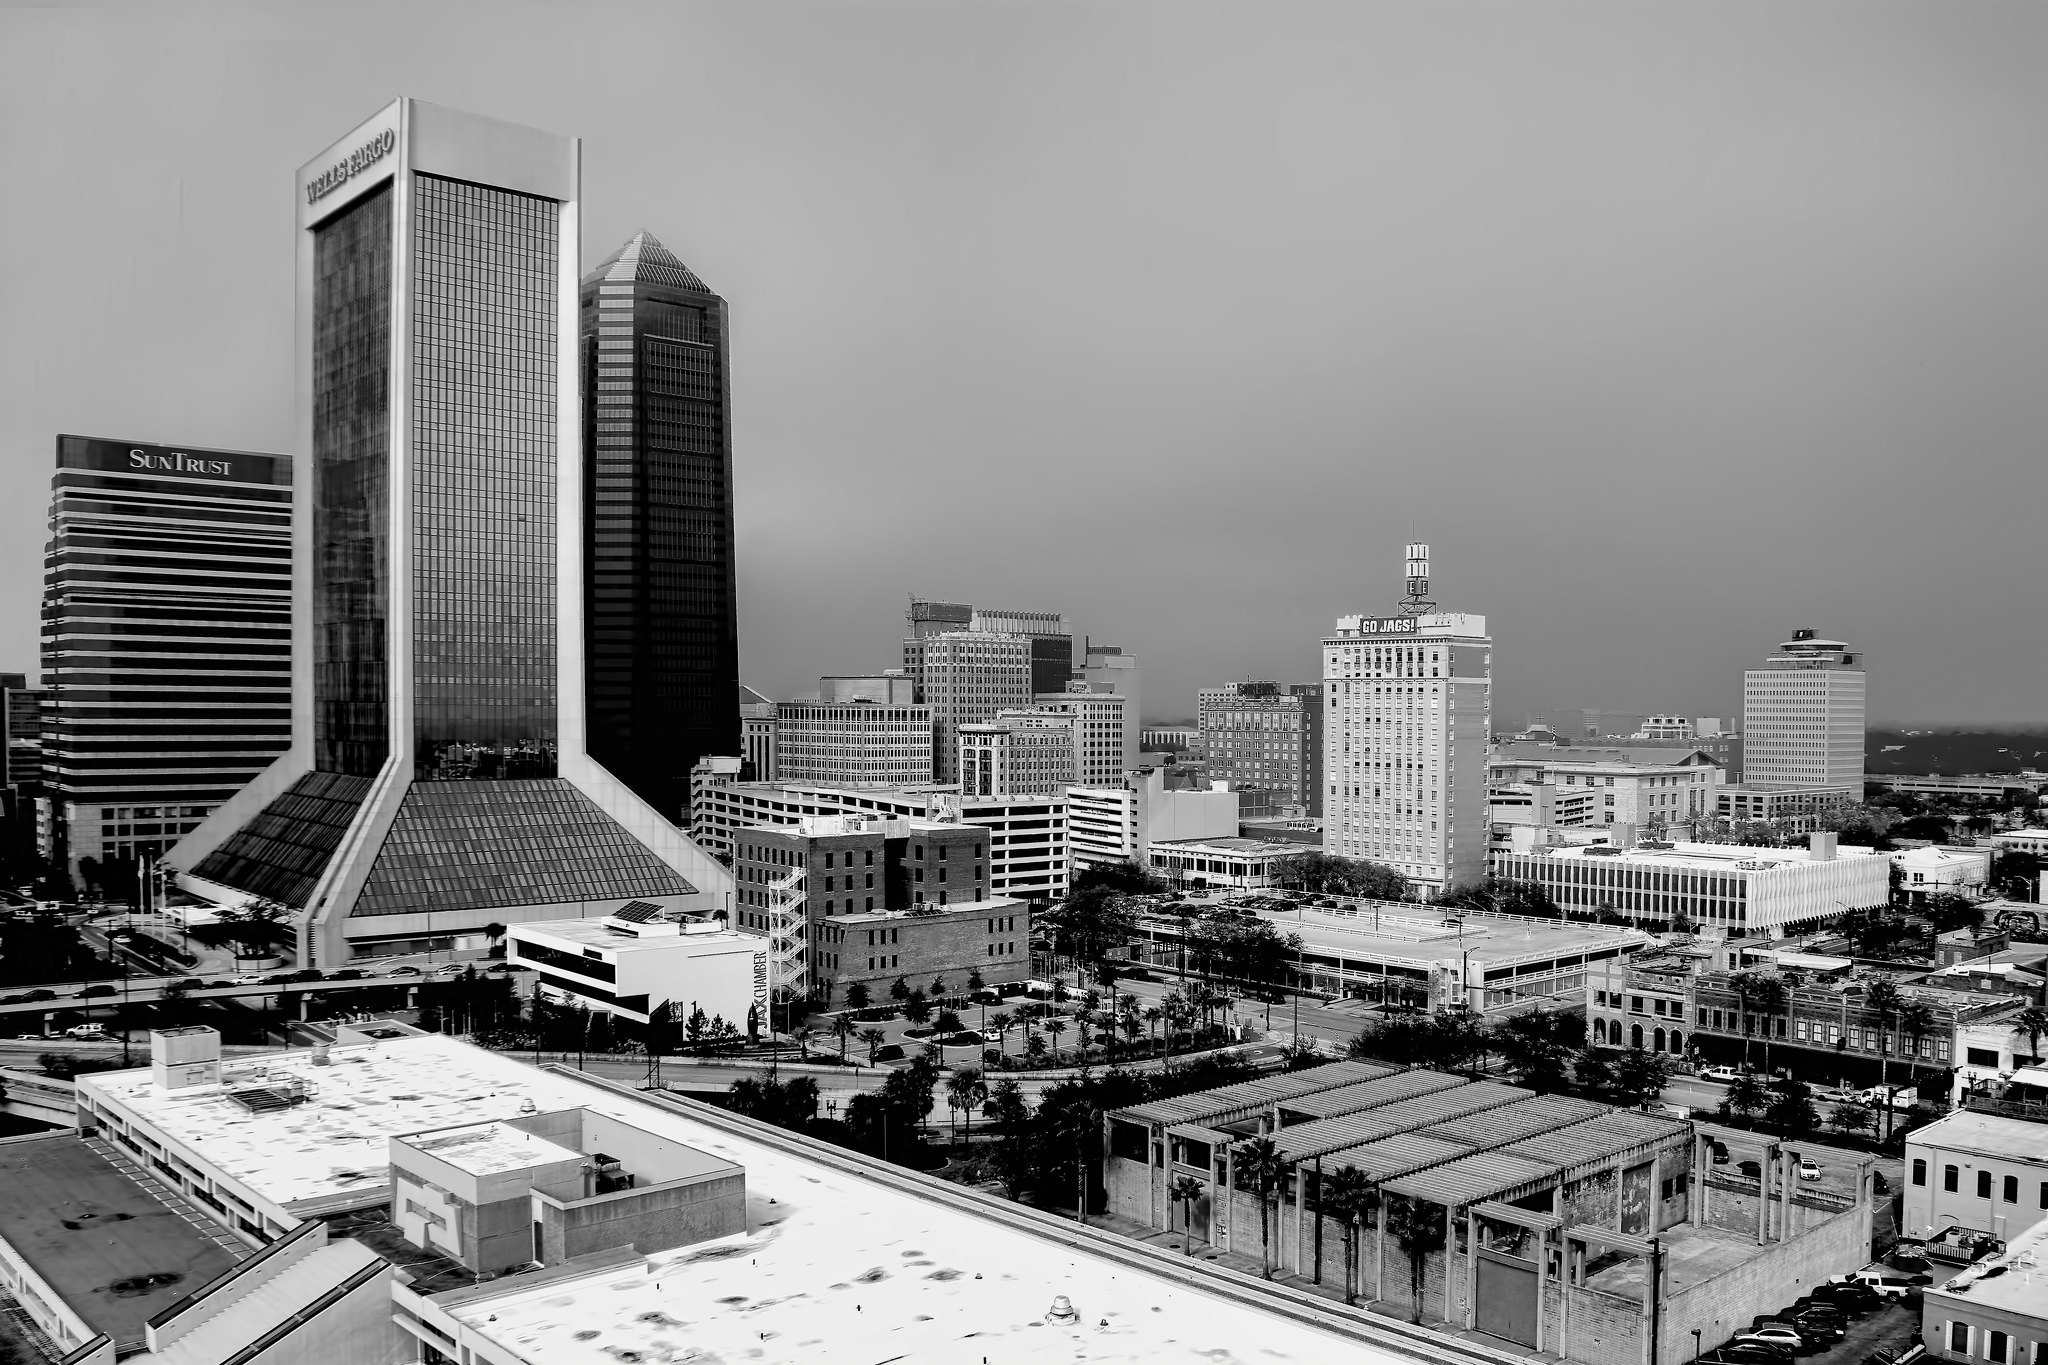 View of downtown Jacksonville, Florida, USA